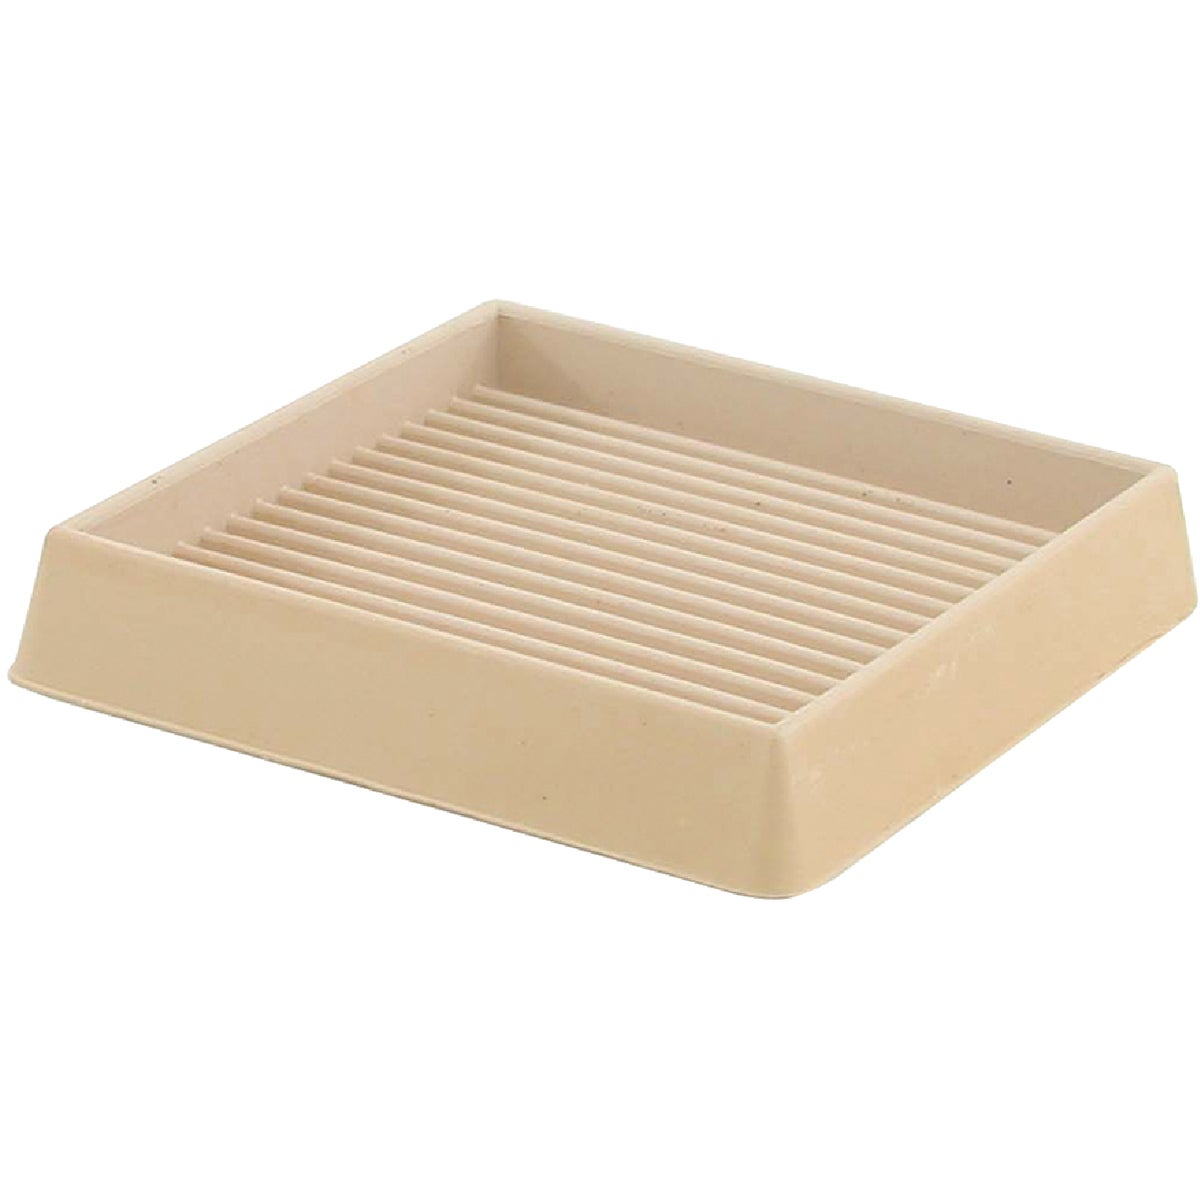 "3X3""SQ ALMOND RUBBER CUP - 227631 by Shepherd Hardware"